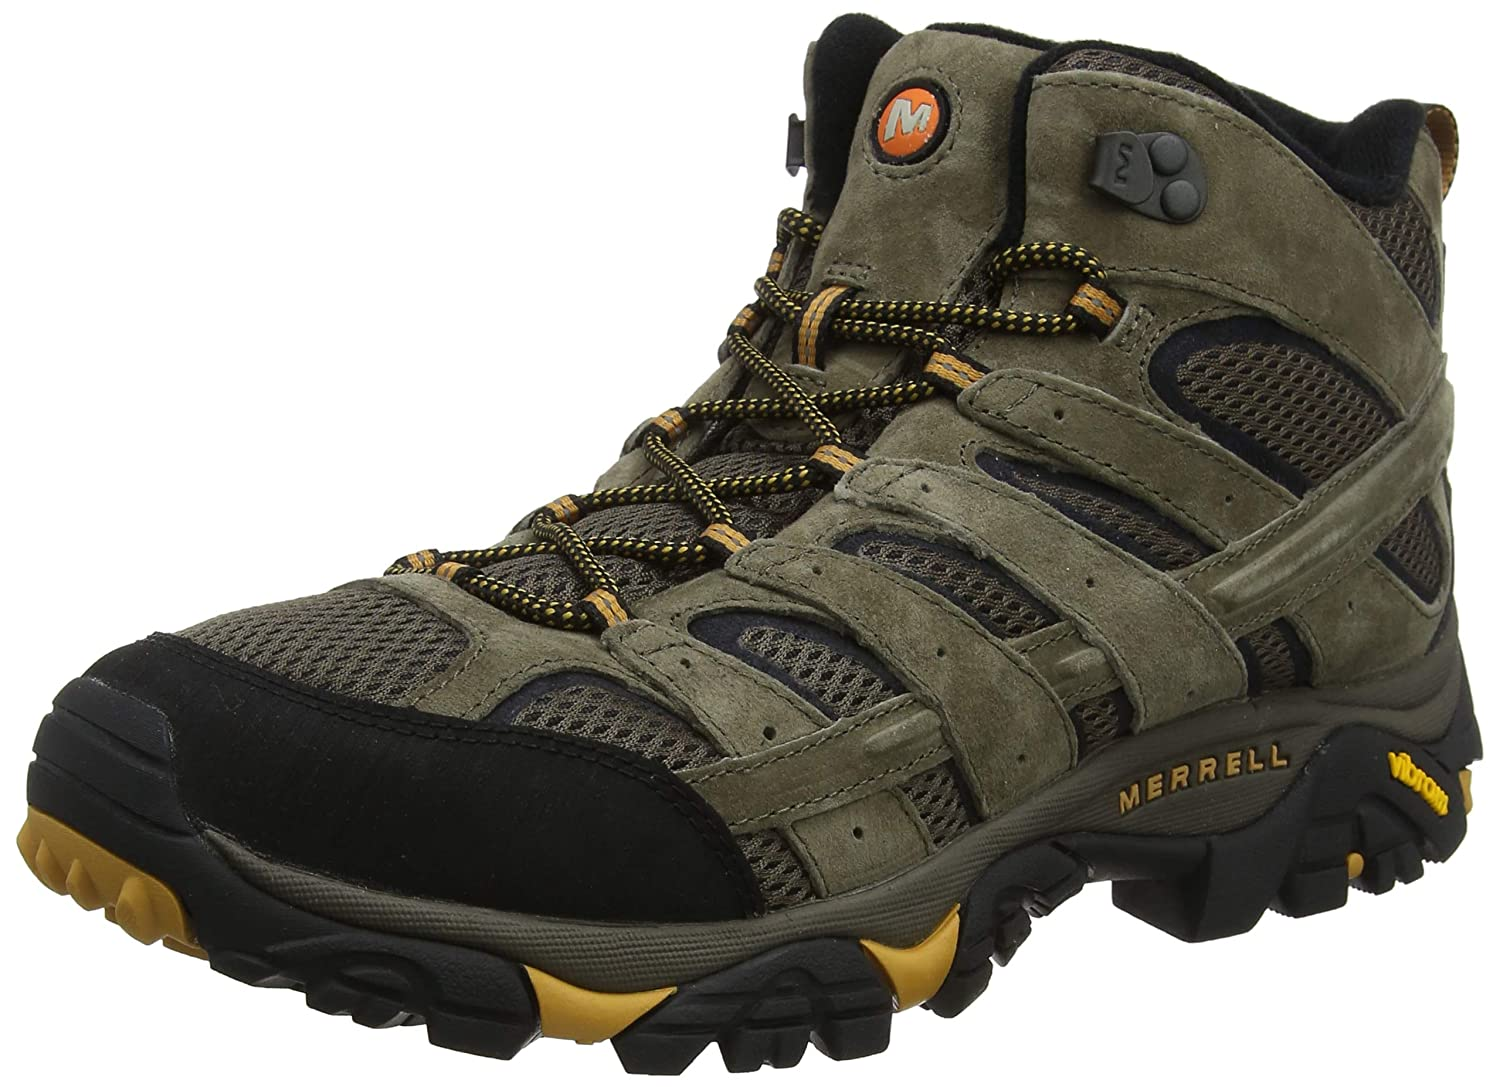 fbaf9aa9f70 Merrell Men's Moab 2 Vent Mid Hiking Boot